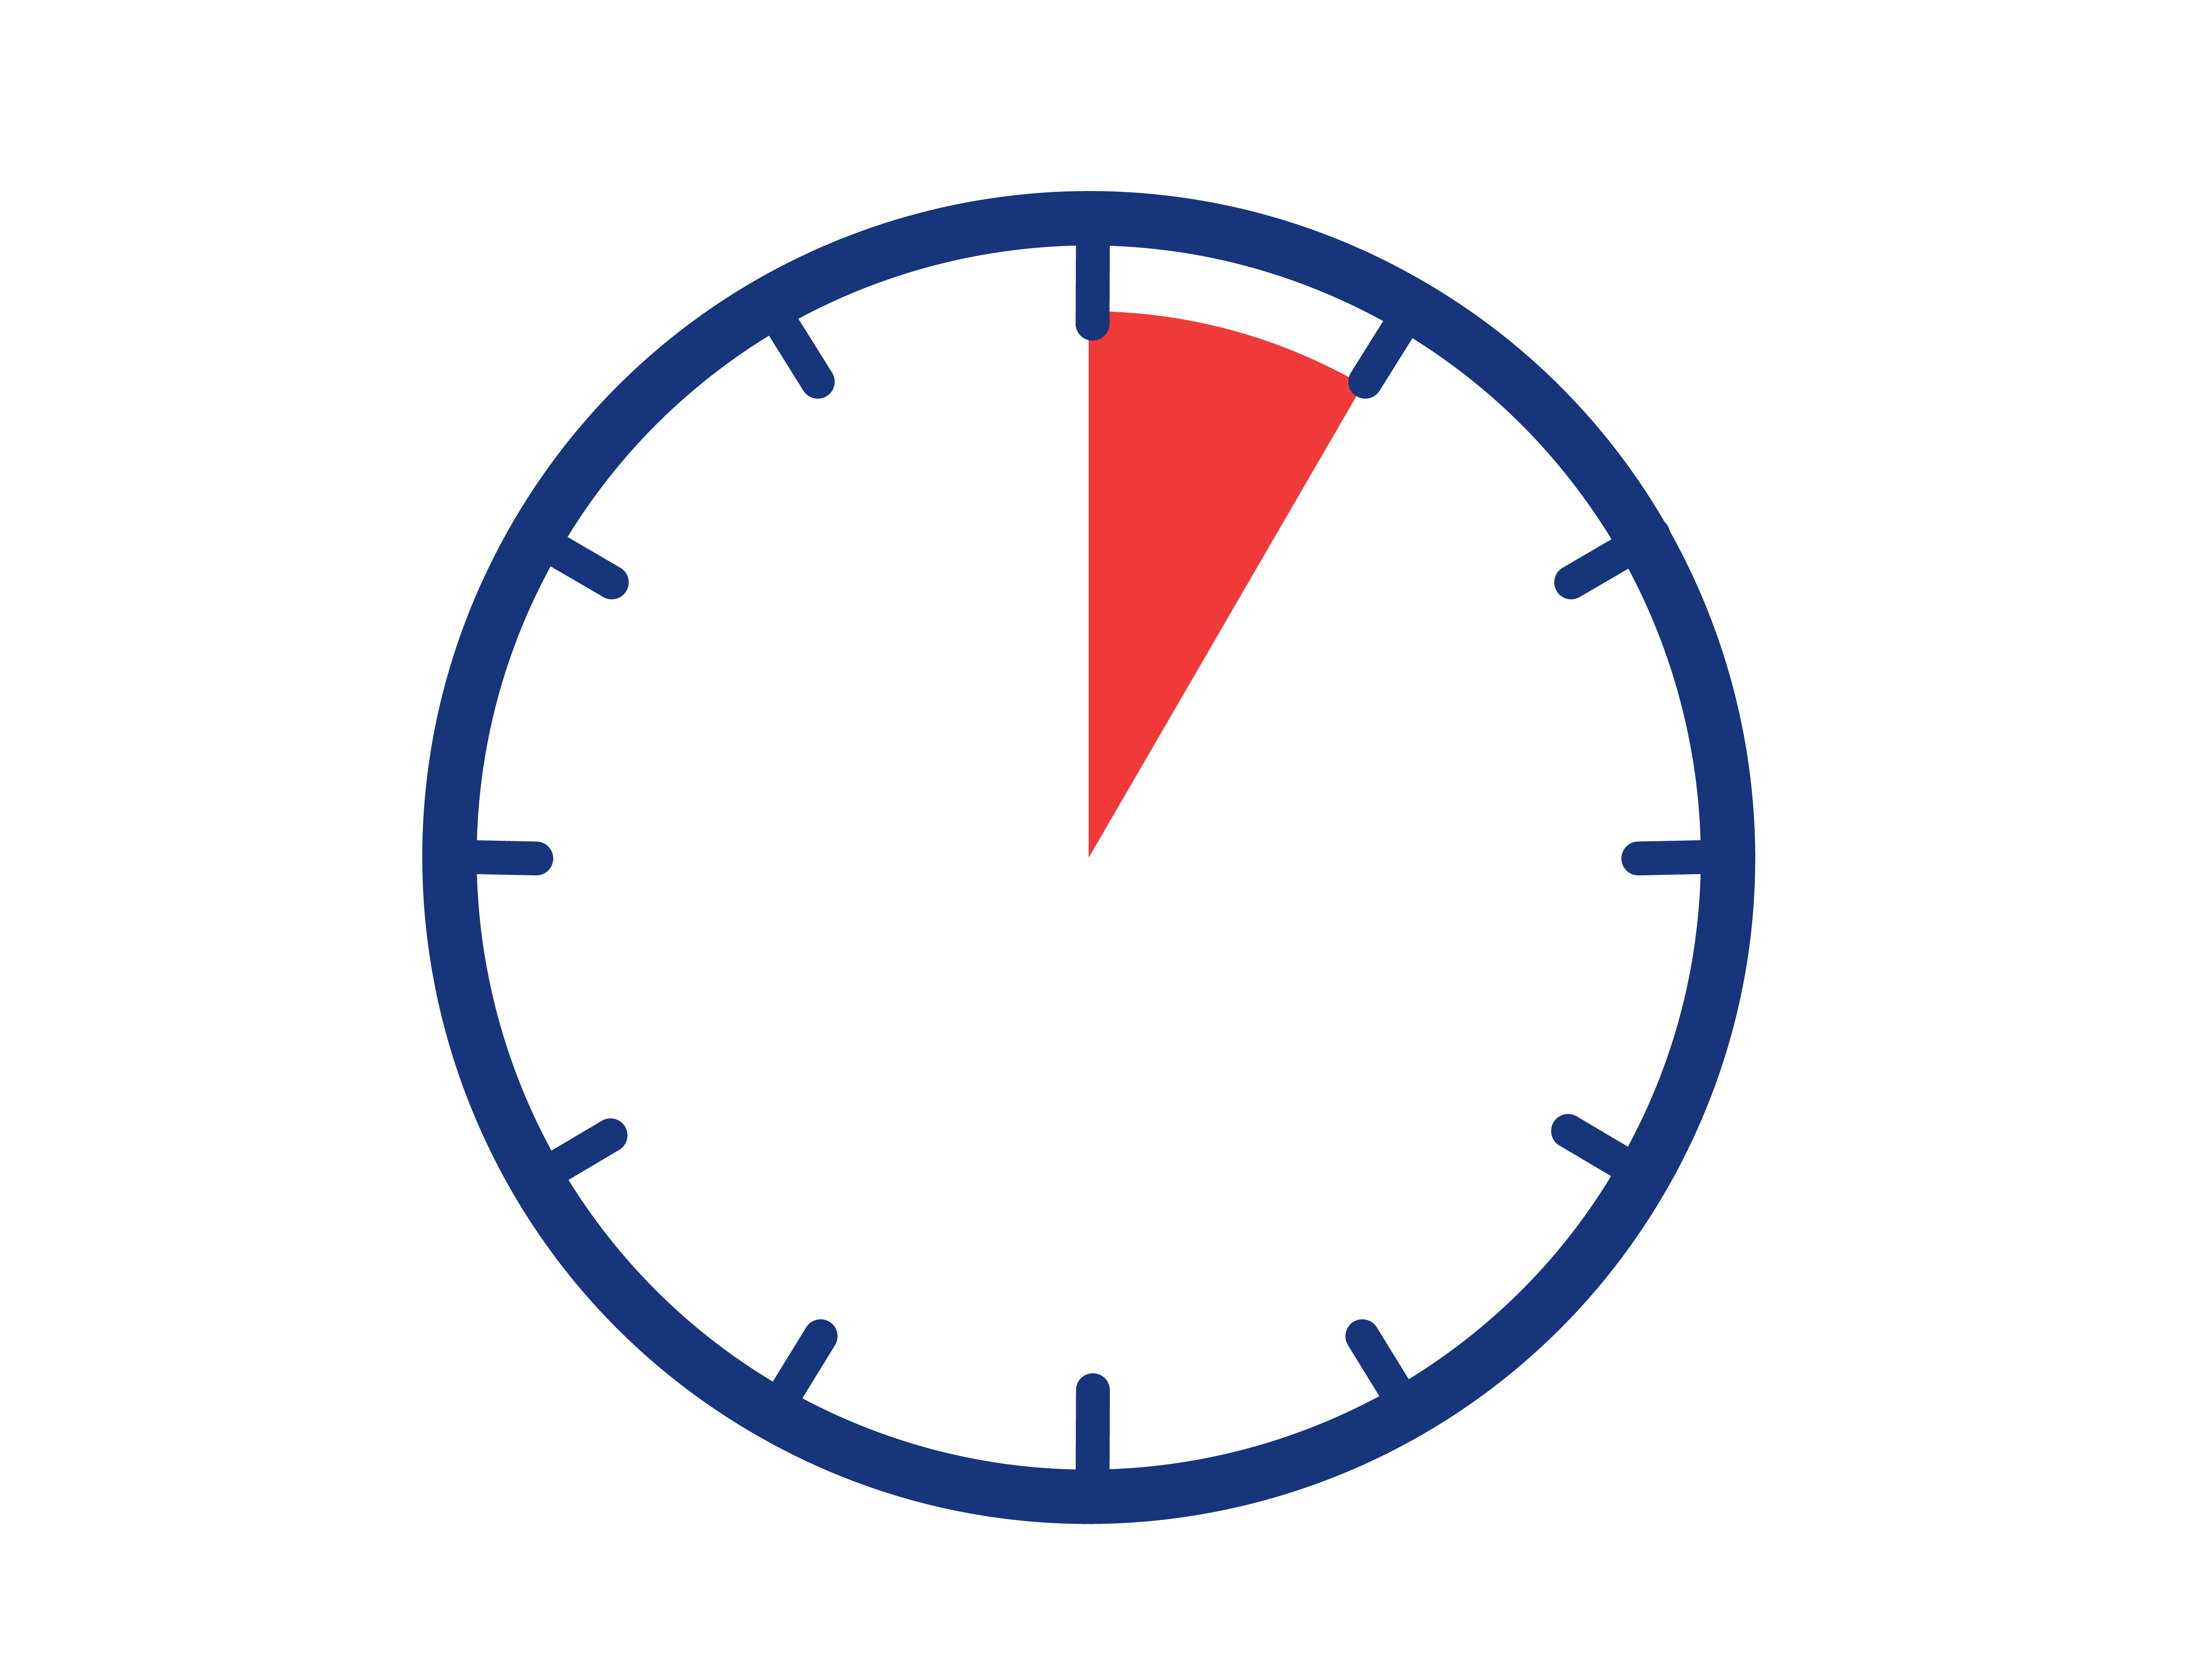 Stopwatch Clipart 5 Minute Stopwatch 5 Minute Transparent